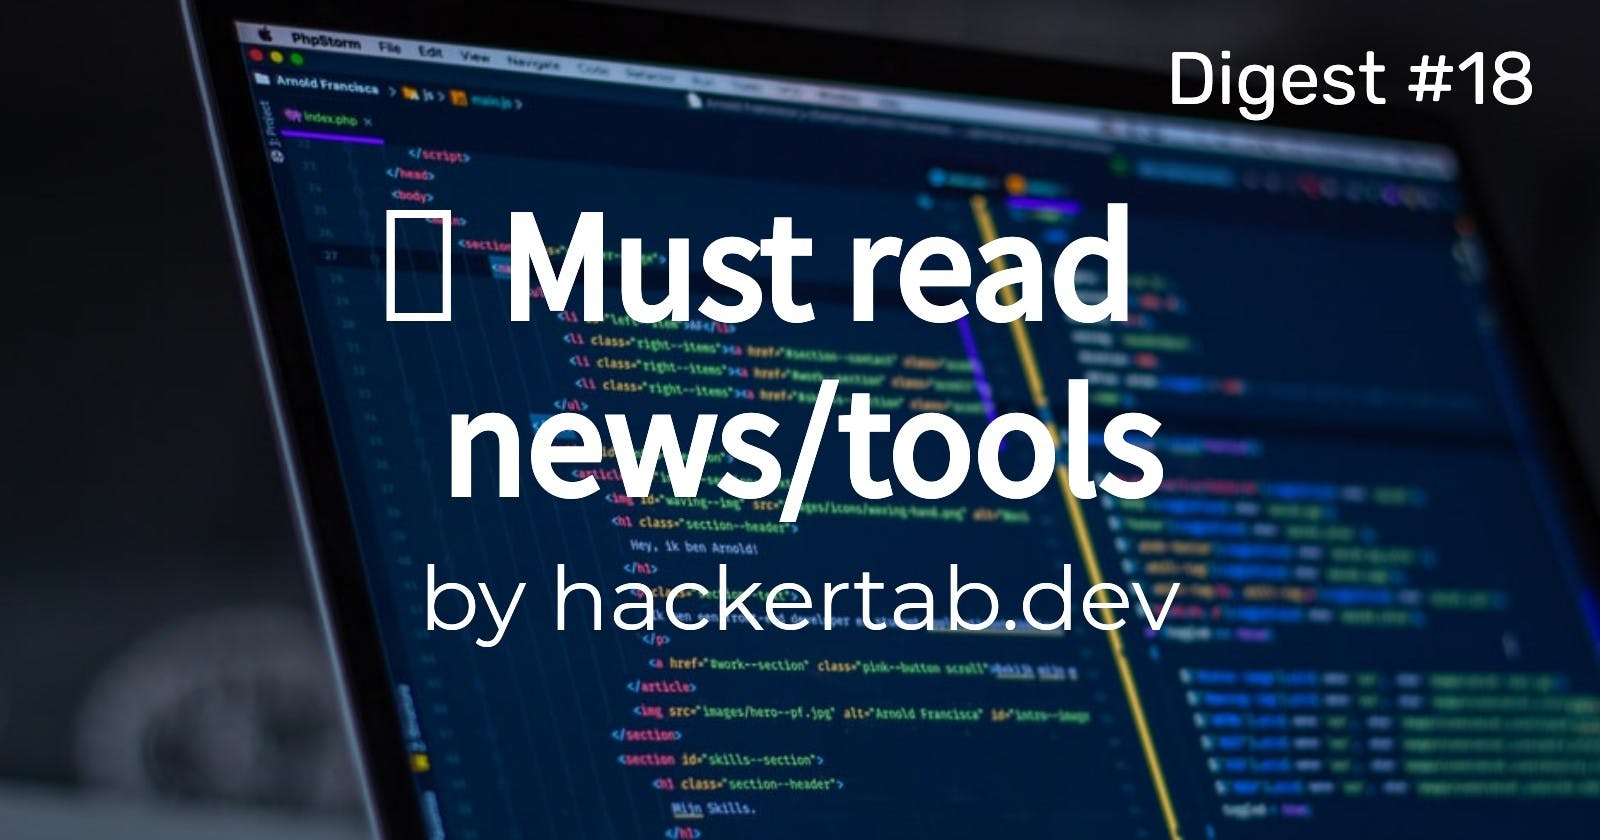 ⚡ Must read Tech news/tools of the day - Digest #18